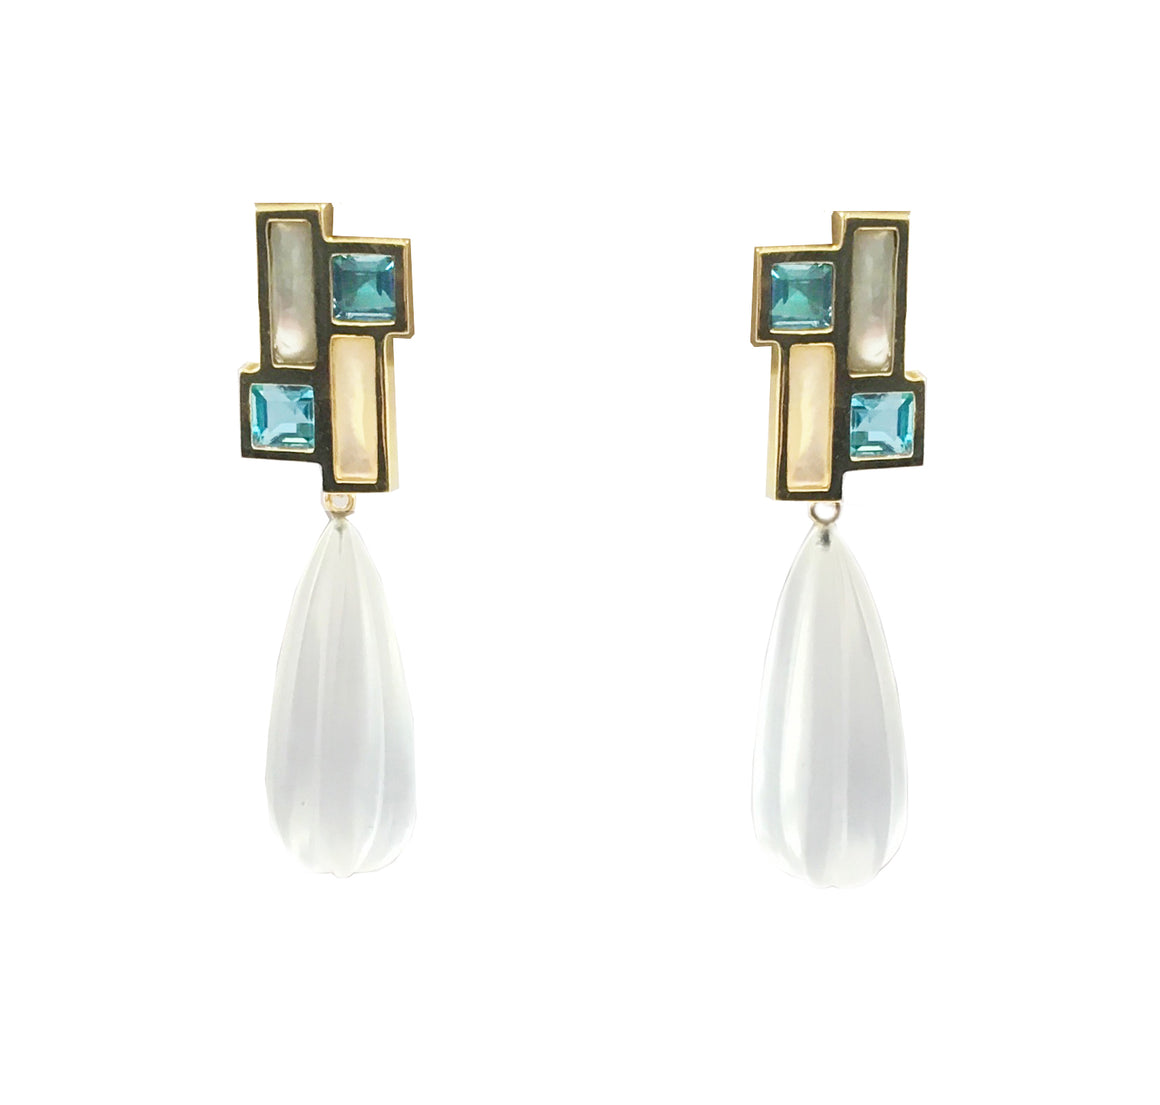 Mondrian Sky Earrings